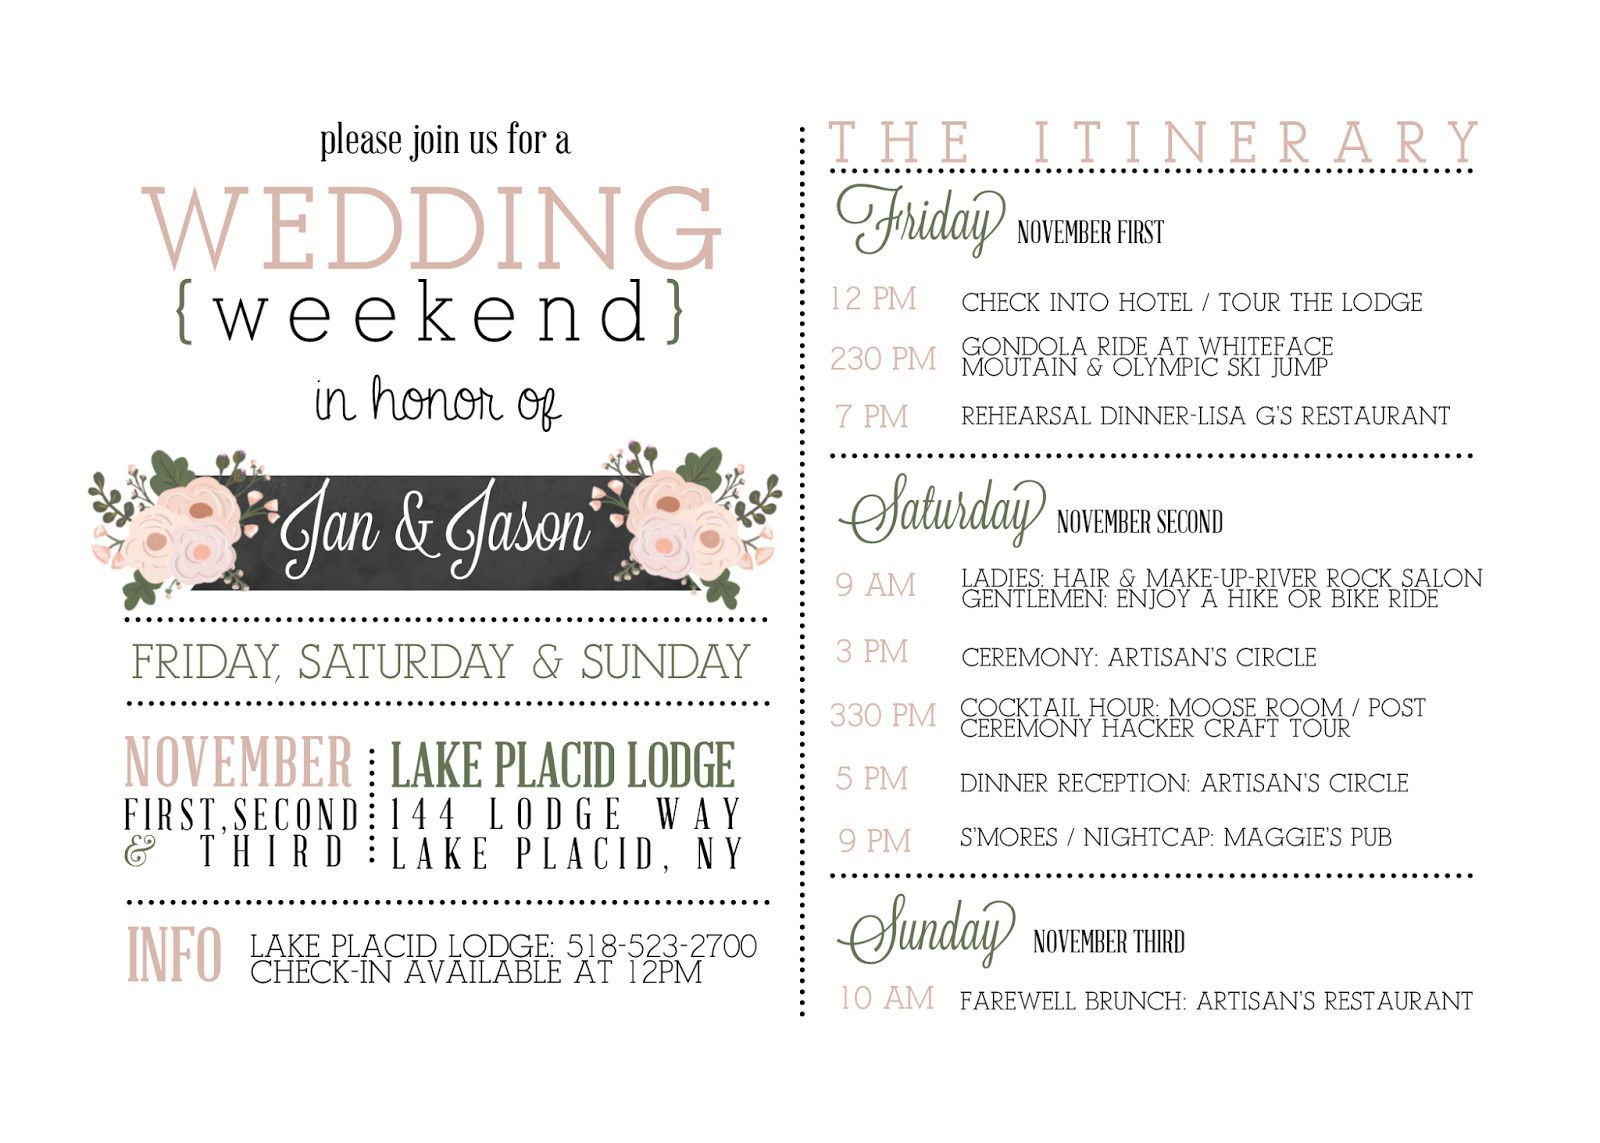 003 Unusual Wedding Day Itinerary Template Idea  Sample Excel WordFull